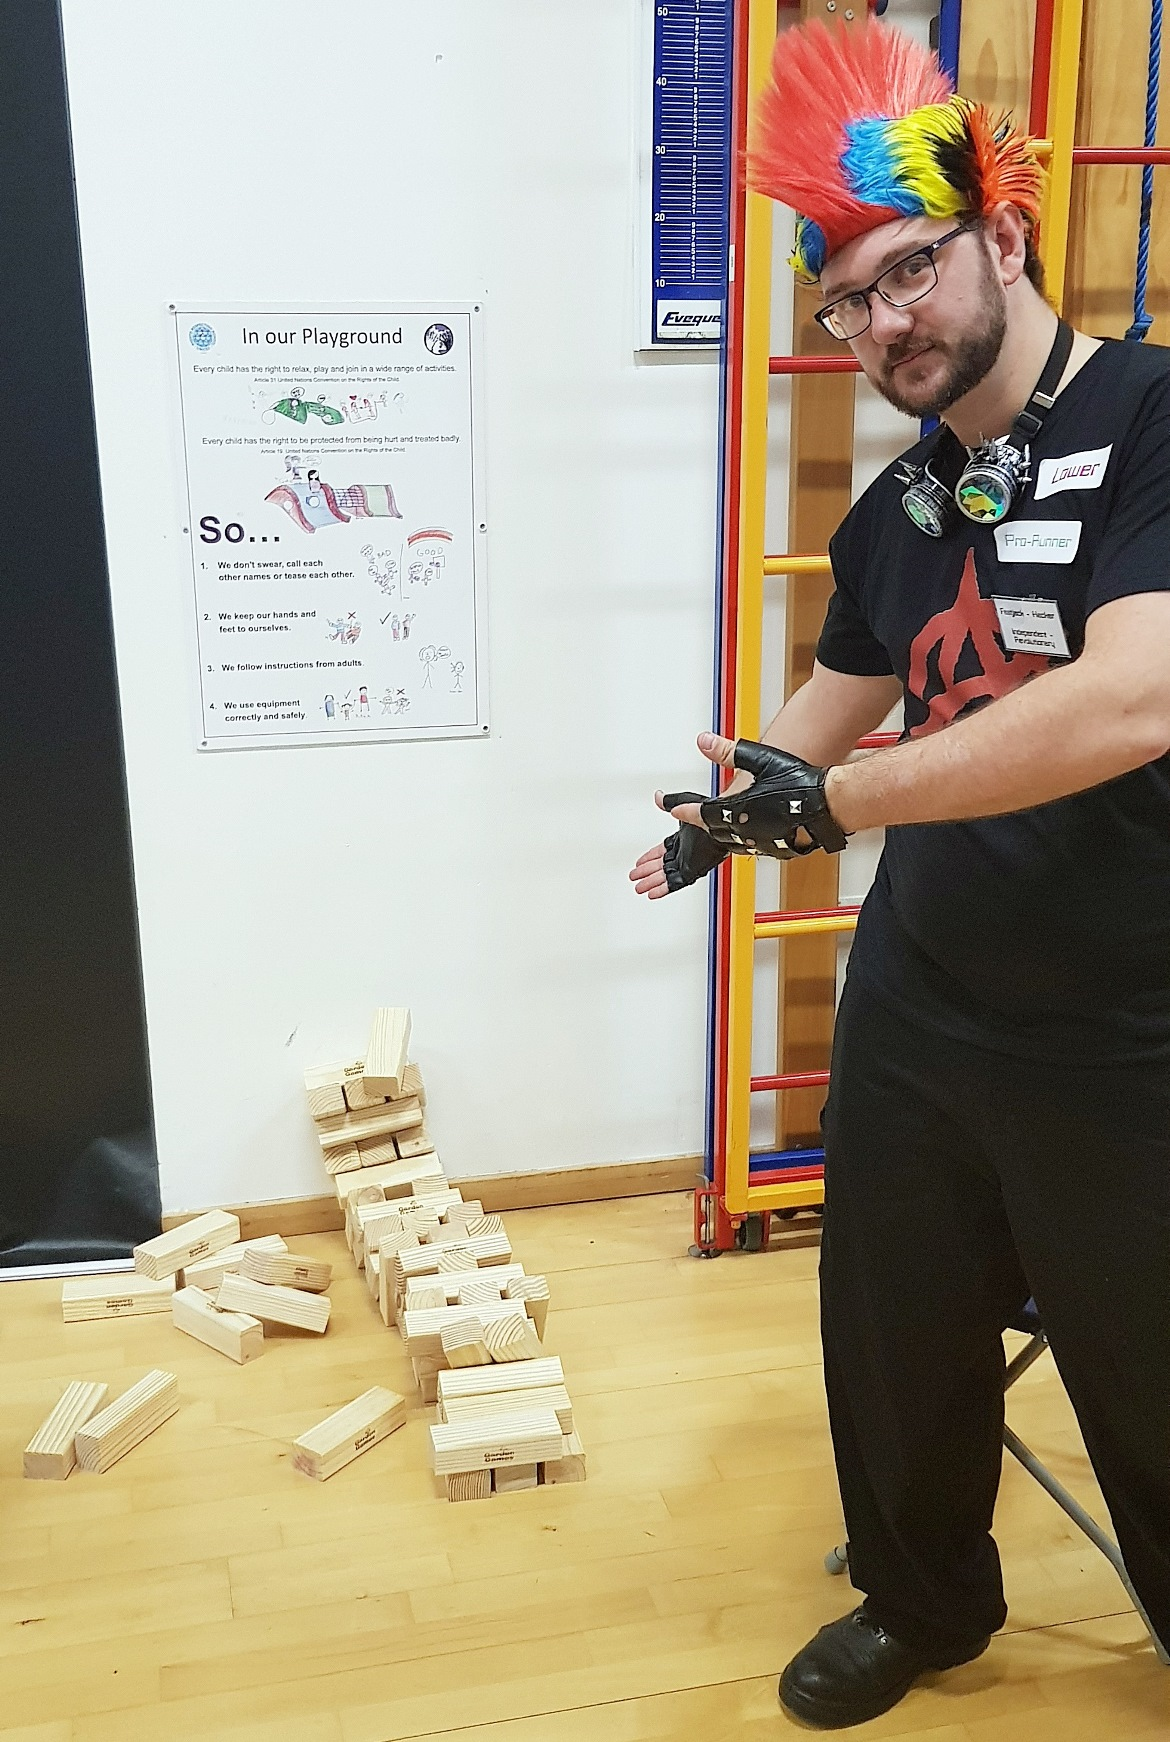 Fastjack destroying everything - Mirrorshades megagame after action report by BeckyBecky Blogs